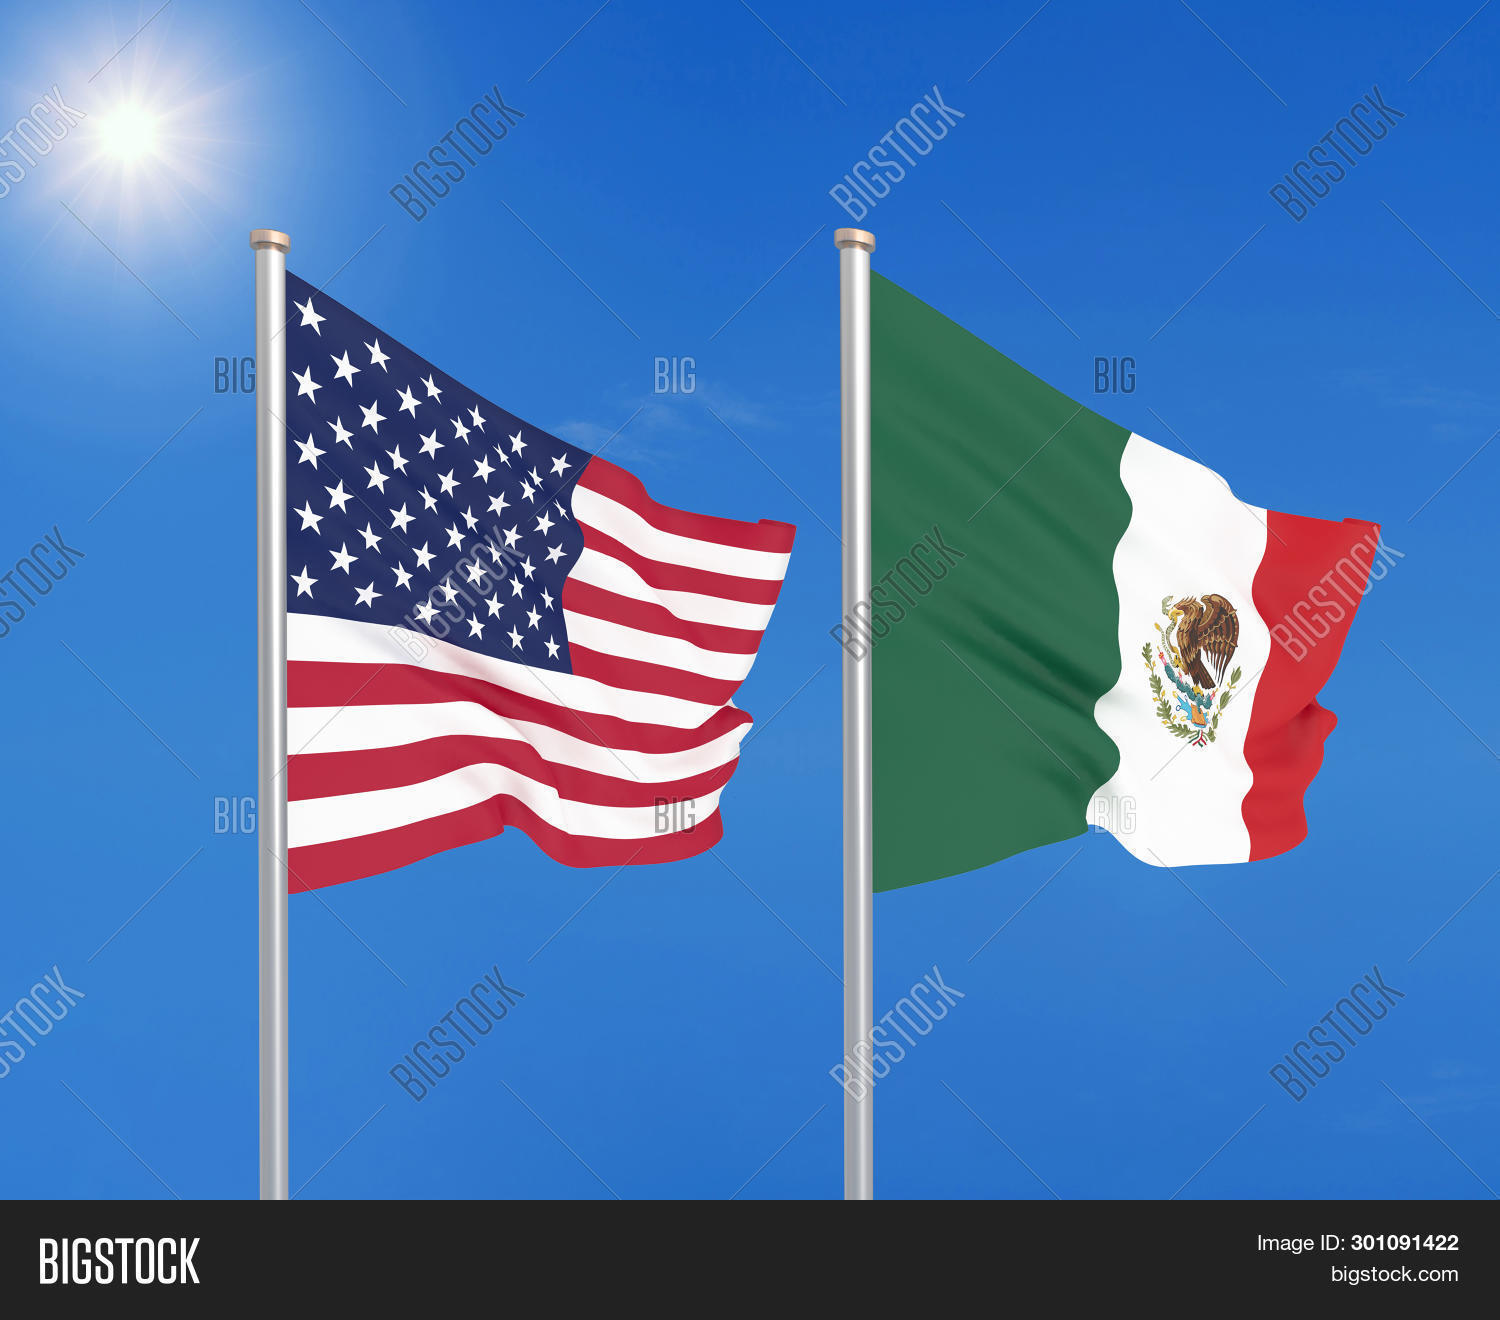 3d,Mexico,america,american,background,celebrate,celebration,combat,combination,communication,competition,concept,conference,conflict,country,dialog,disagreement,economy,flag,illustration,nation,national,patriotic,patriotism,peace,relations,sanctions,sign,sky,soccer,sport,states,summit,symbol,team,together,trade,two,union,united,usa,veterans,vs,war,wave,waving